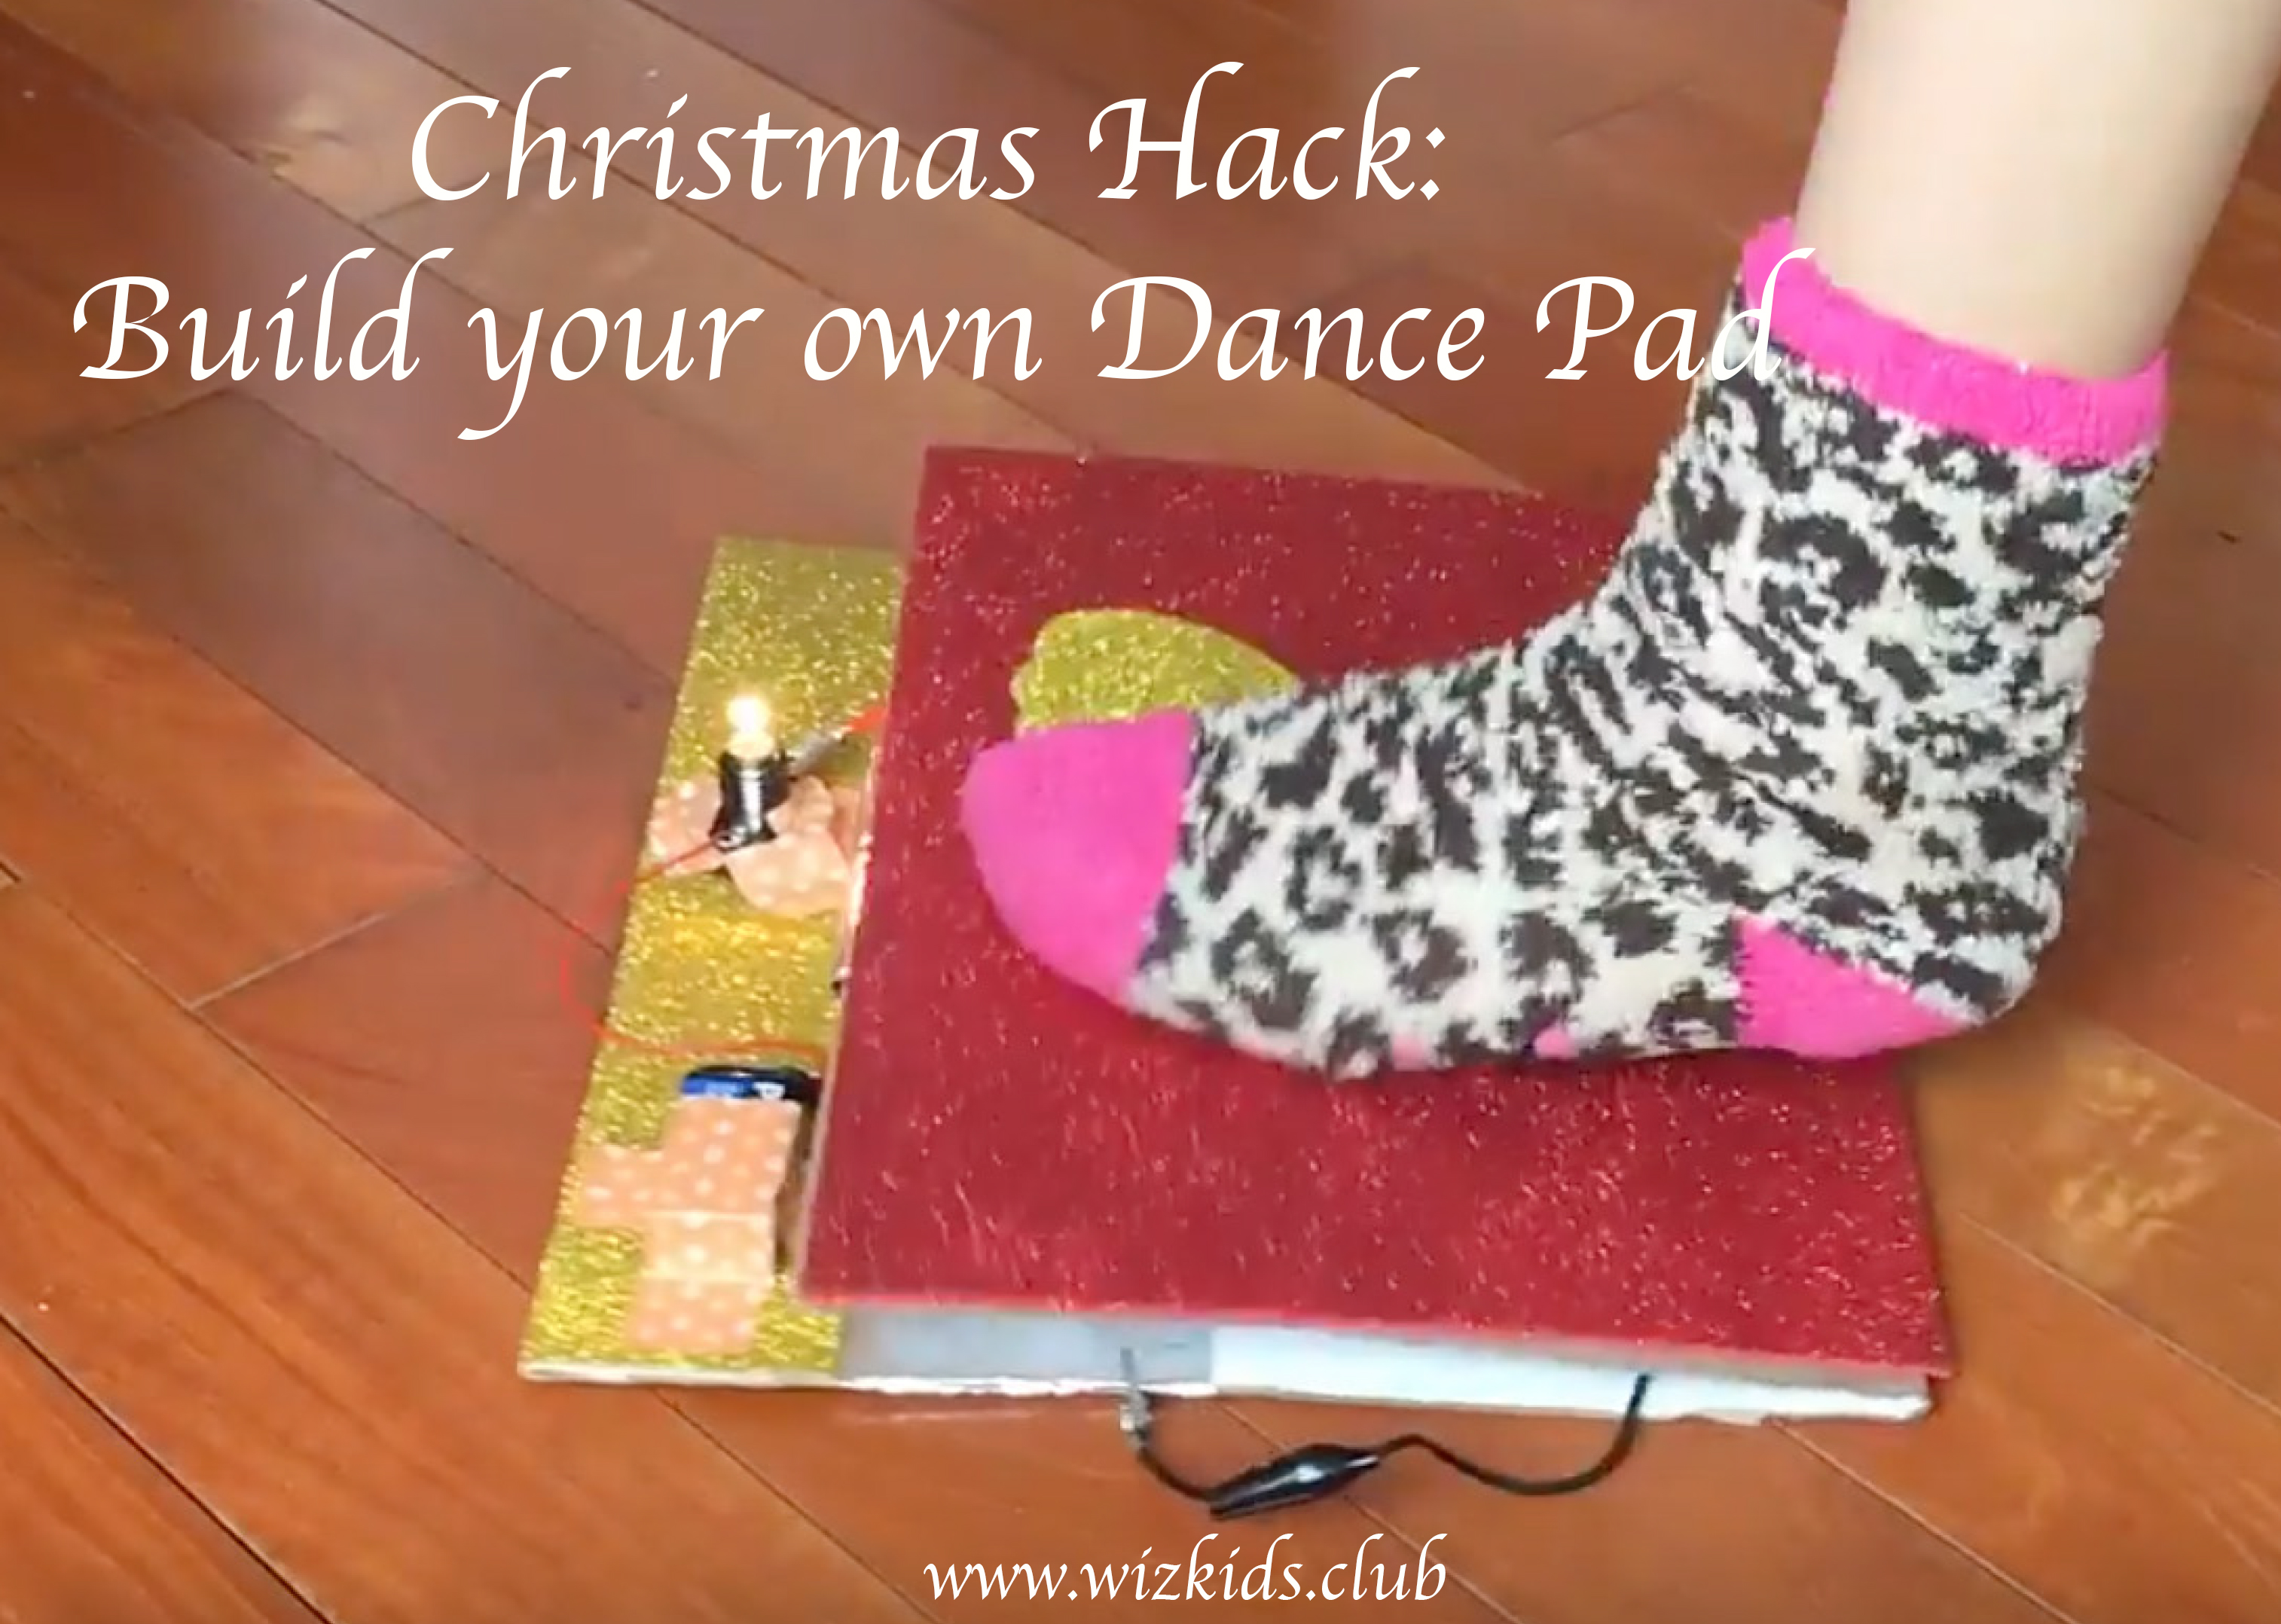 Christmas Hack: Build your Dance Pad!